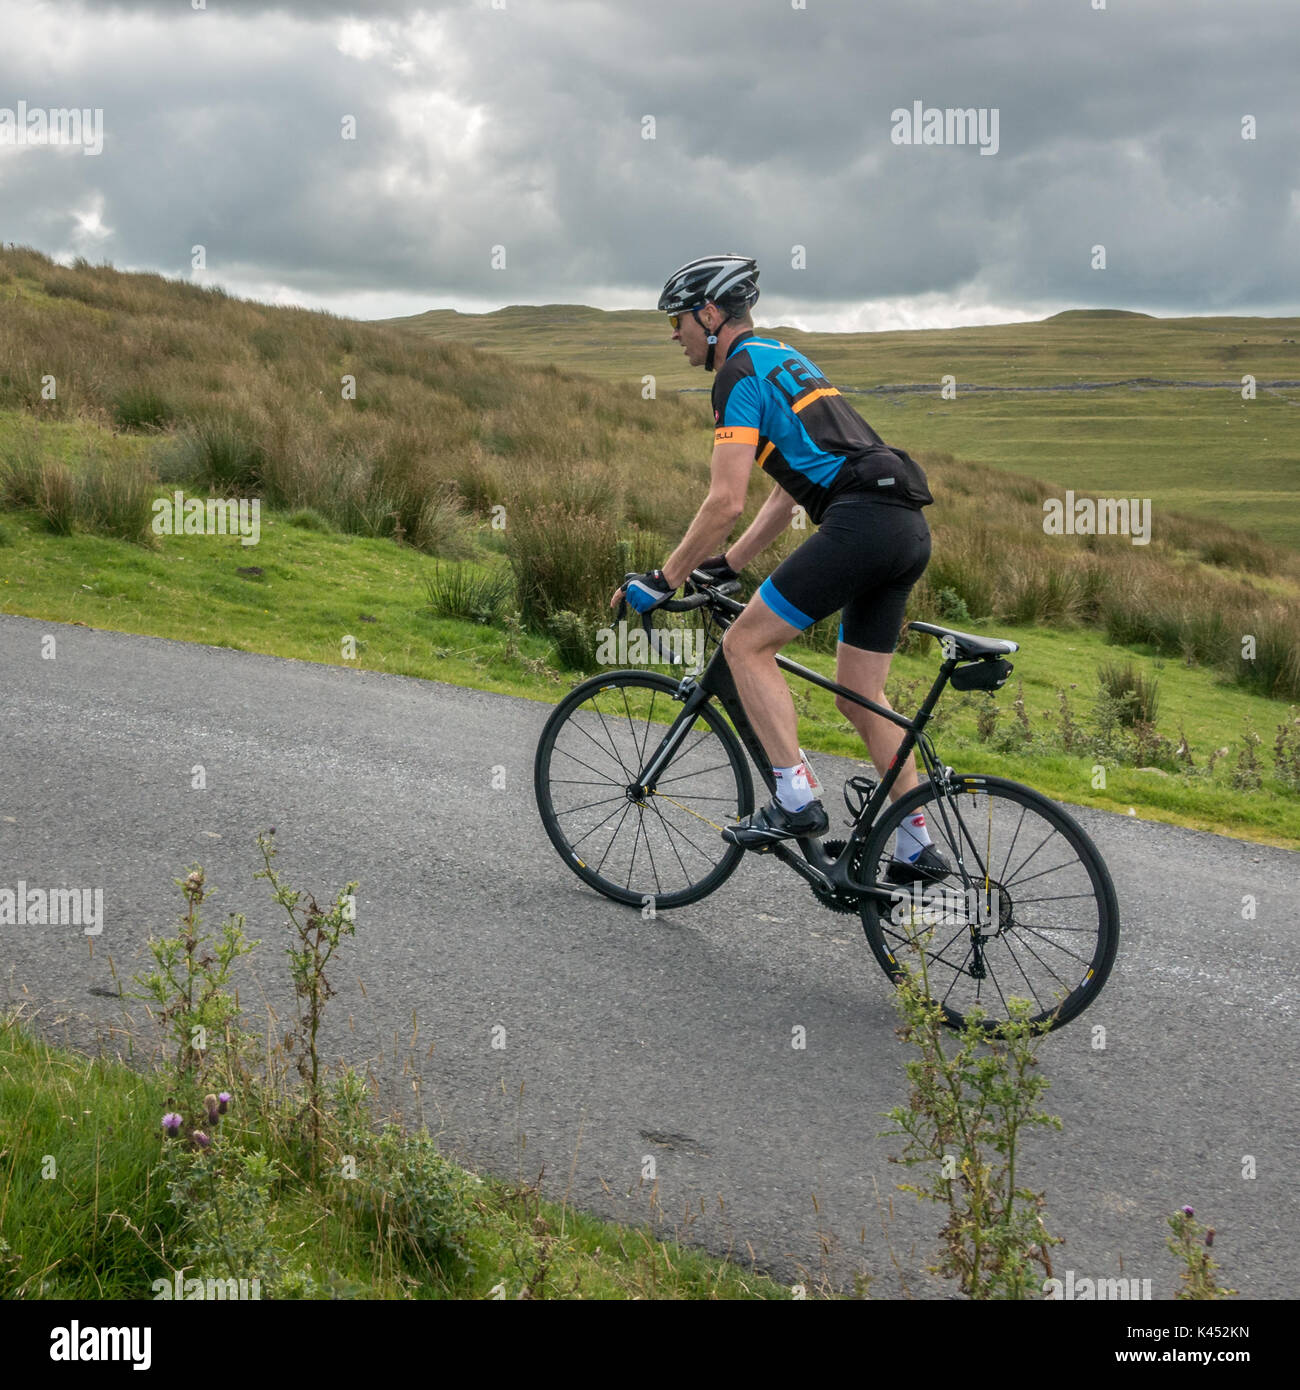 Cyclist, out of the saddle, ascending a steep uphill section of road on a Cube road bike with Di2 electronic groupset on Brootes Lane, Malham Moor, UK - Stock Image